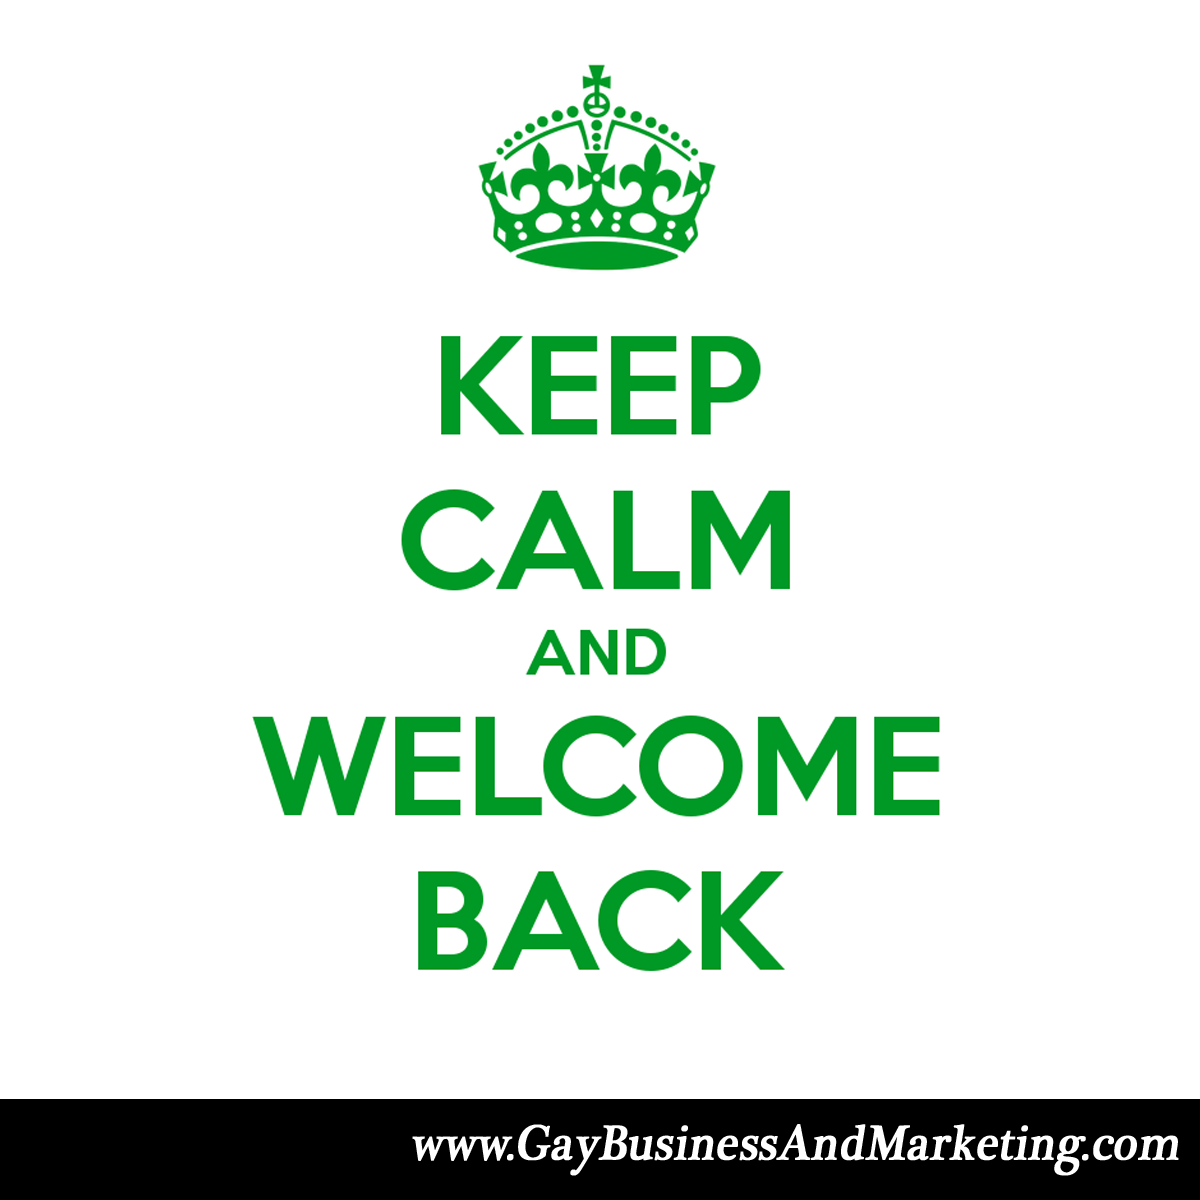 Welcome Back To Work Clipart Best Vectors Design